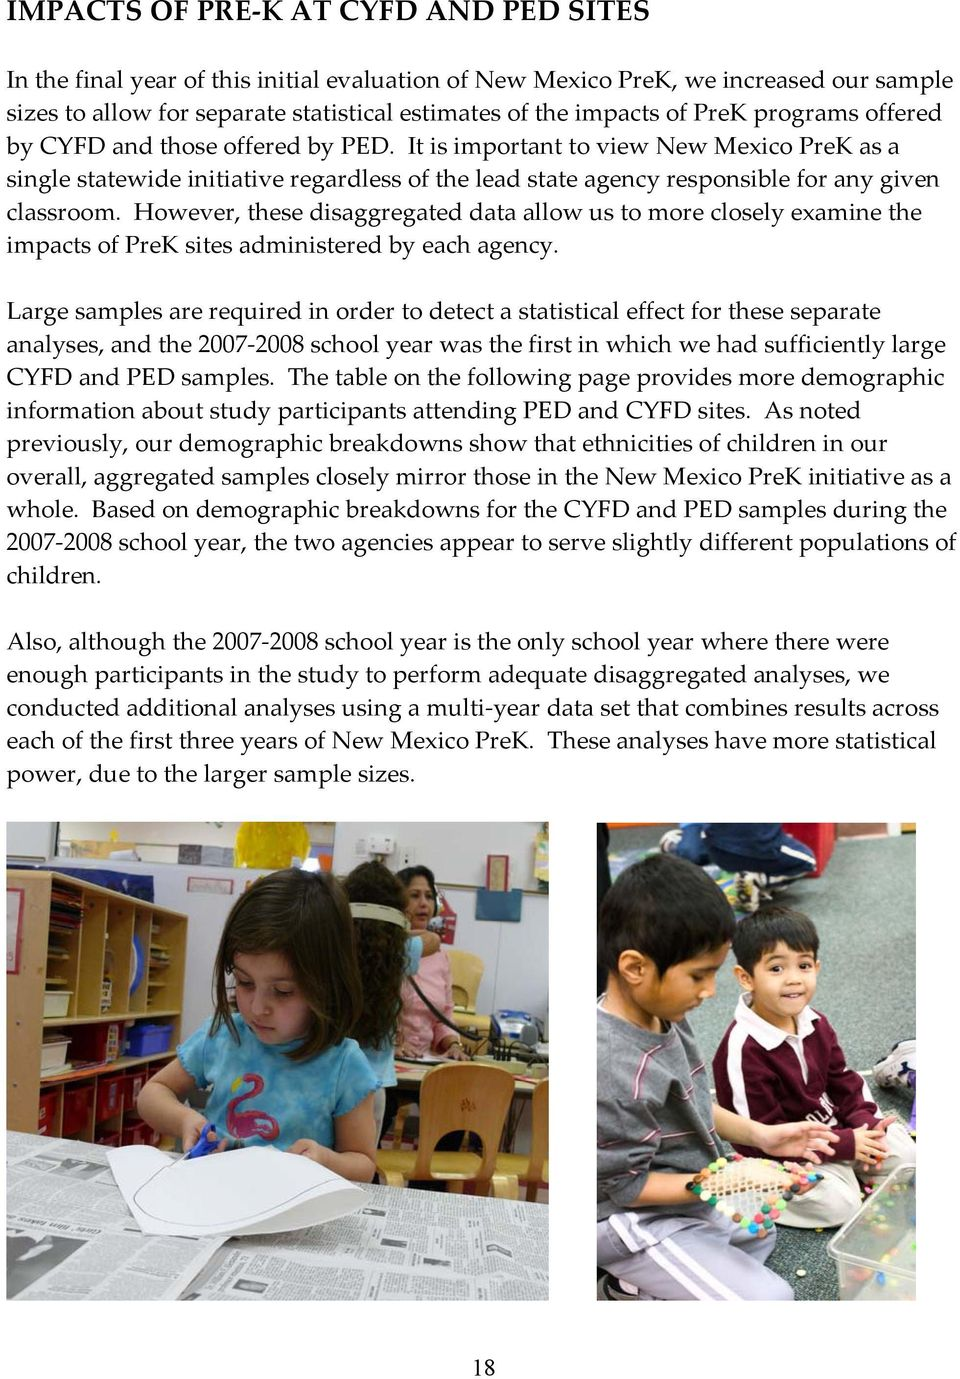 It is important to view New Mexico PreK as a single statewide initiative regardless of the lead state agency responsible for any given classroom.